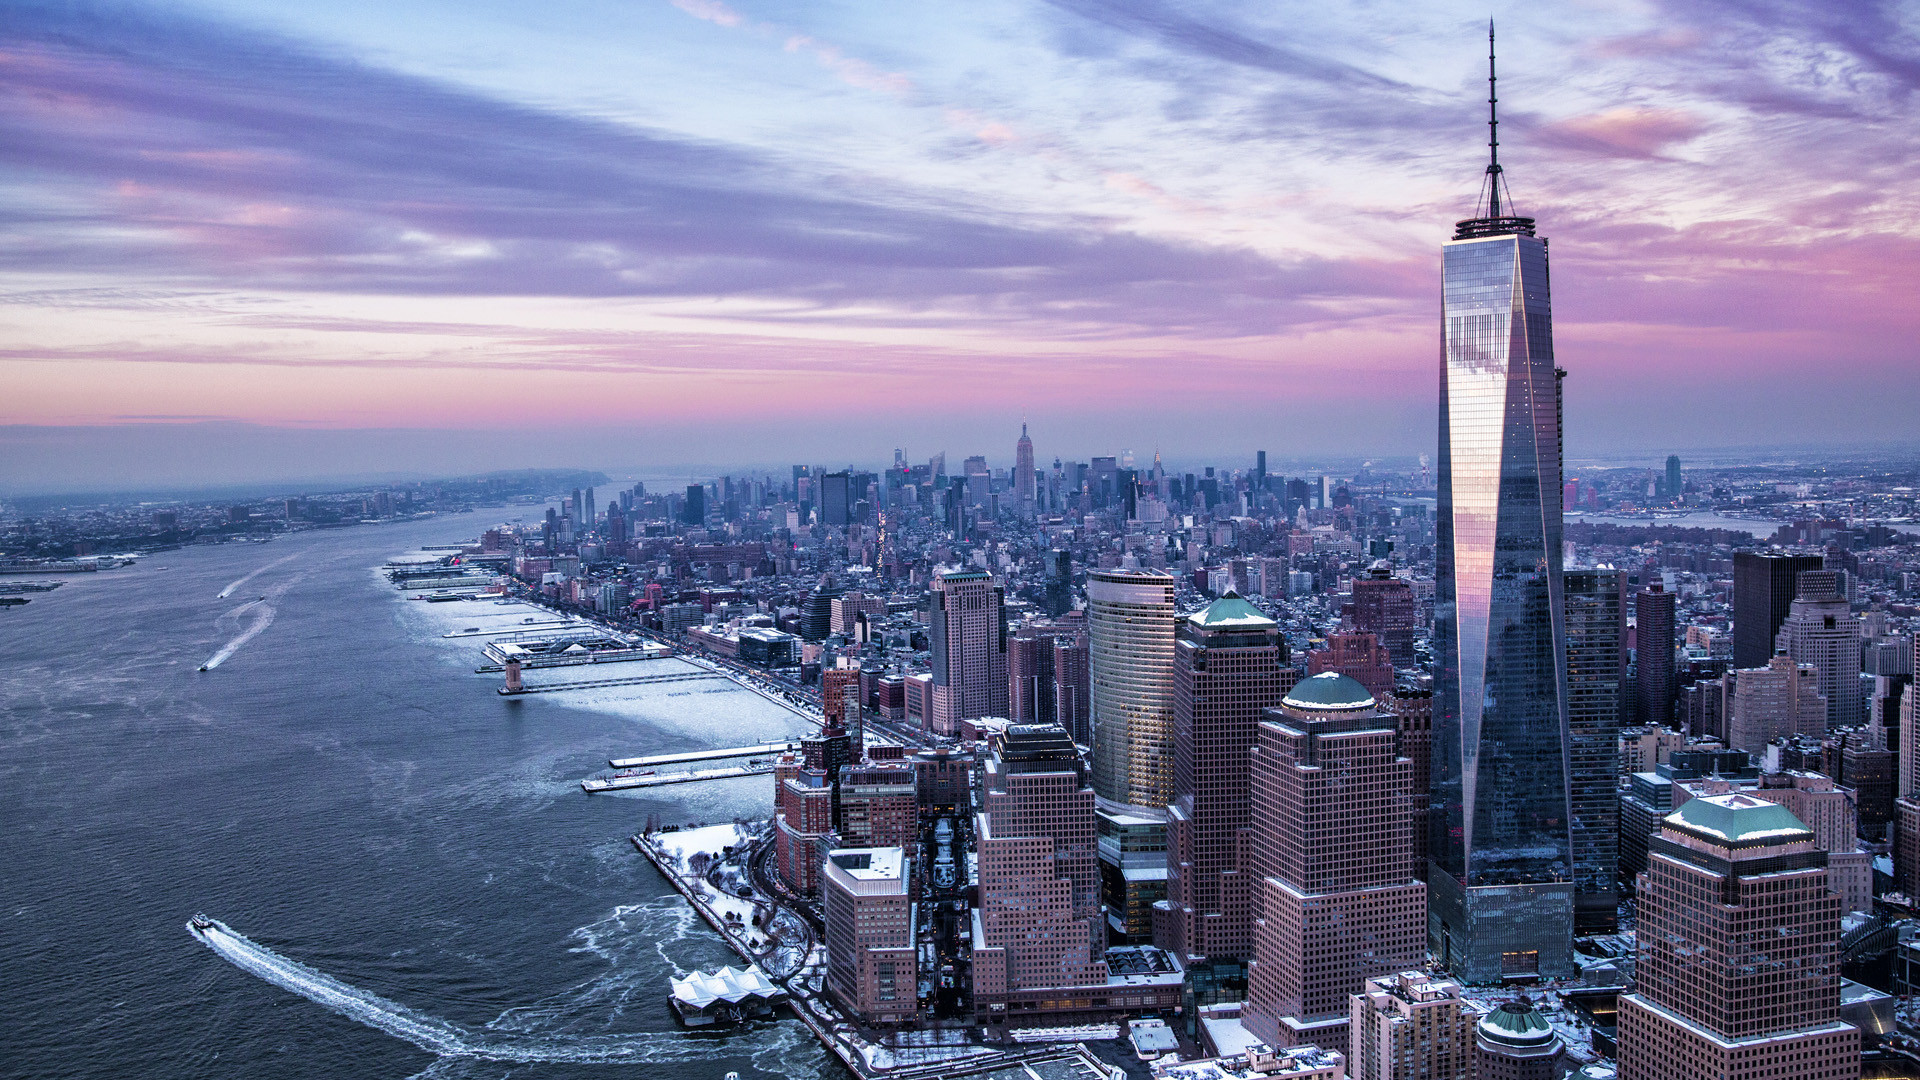 1920x1080  New York City Wallpapers (32 Wallpapers) · Download · 10 ...